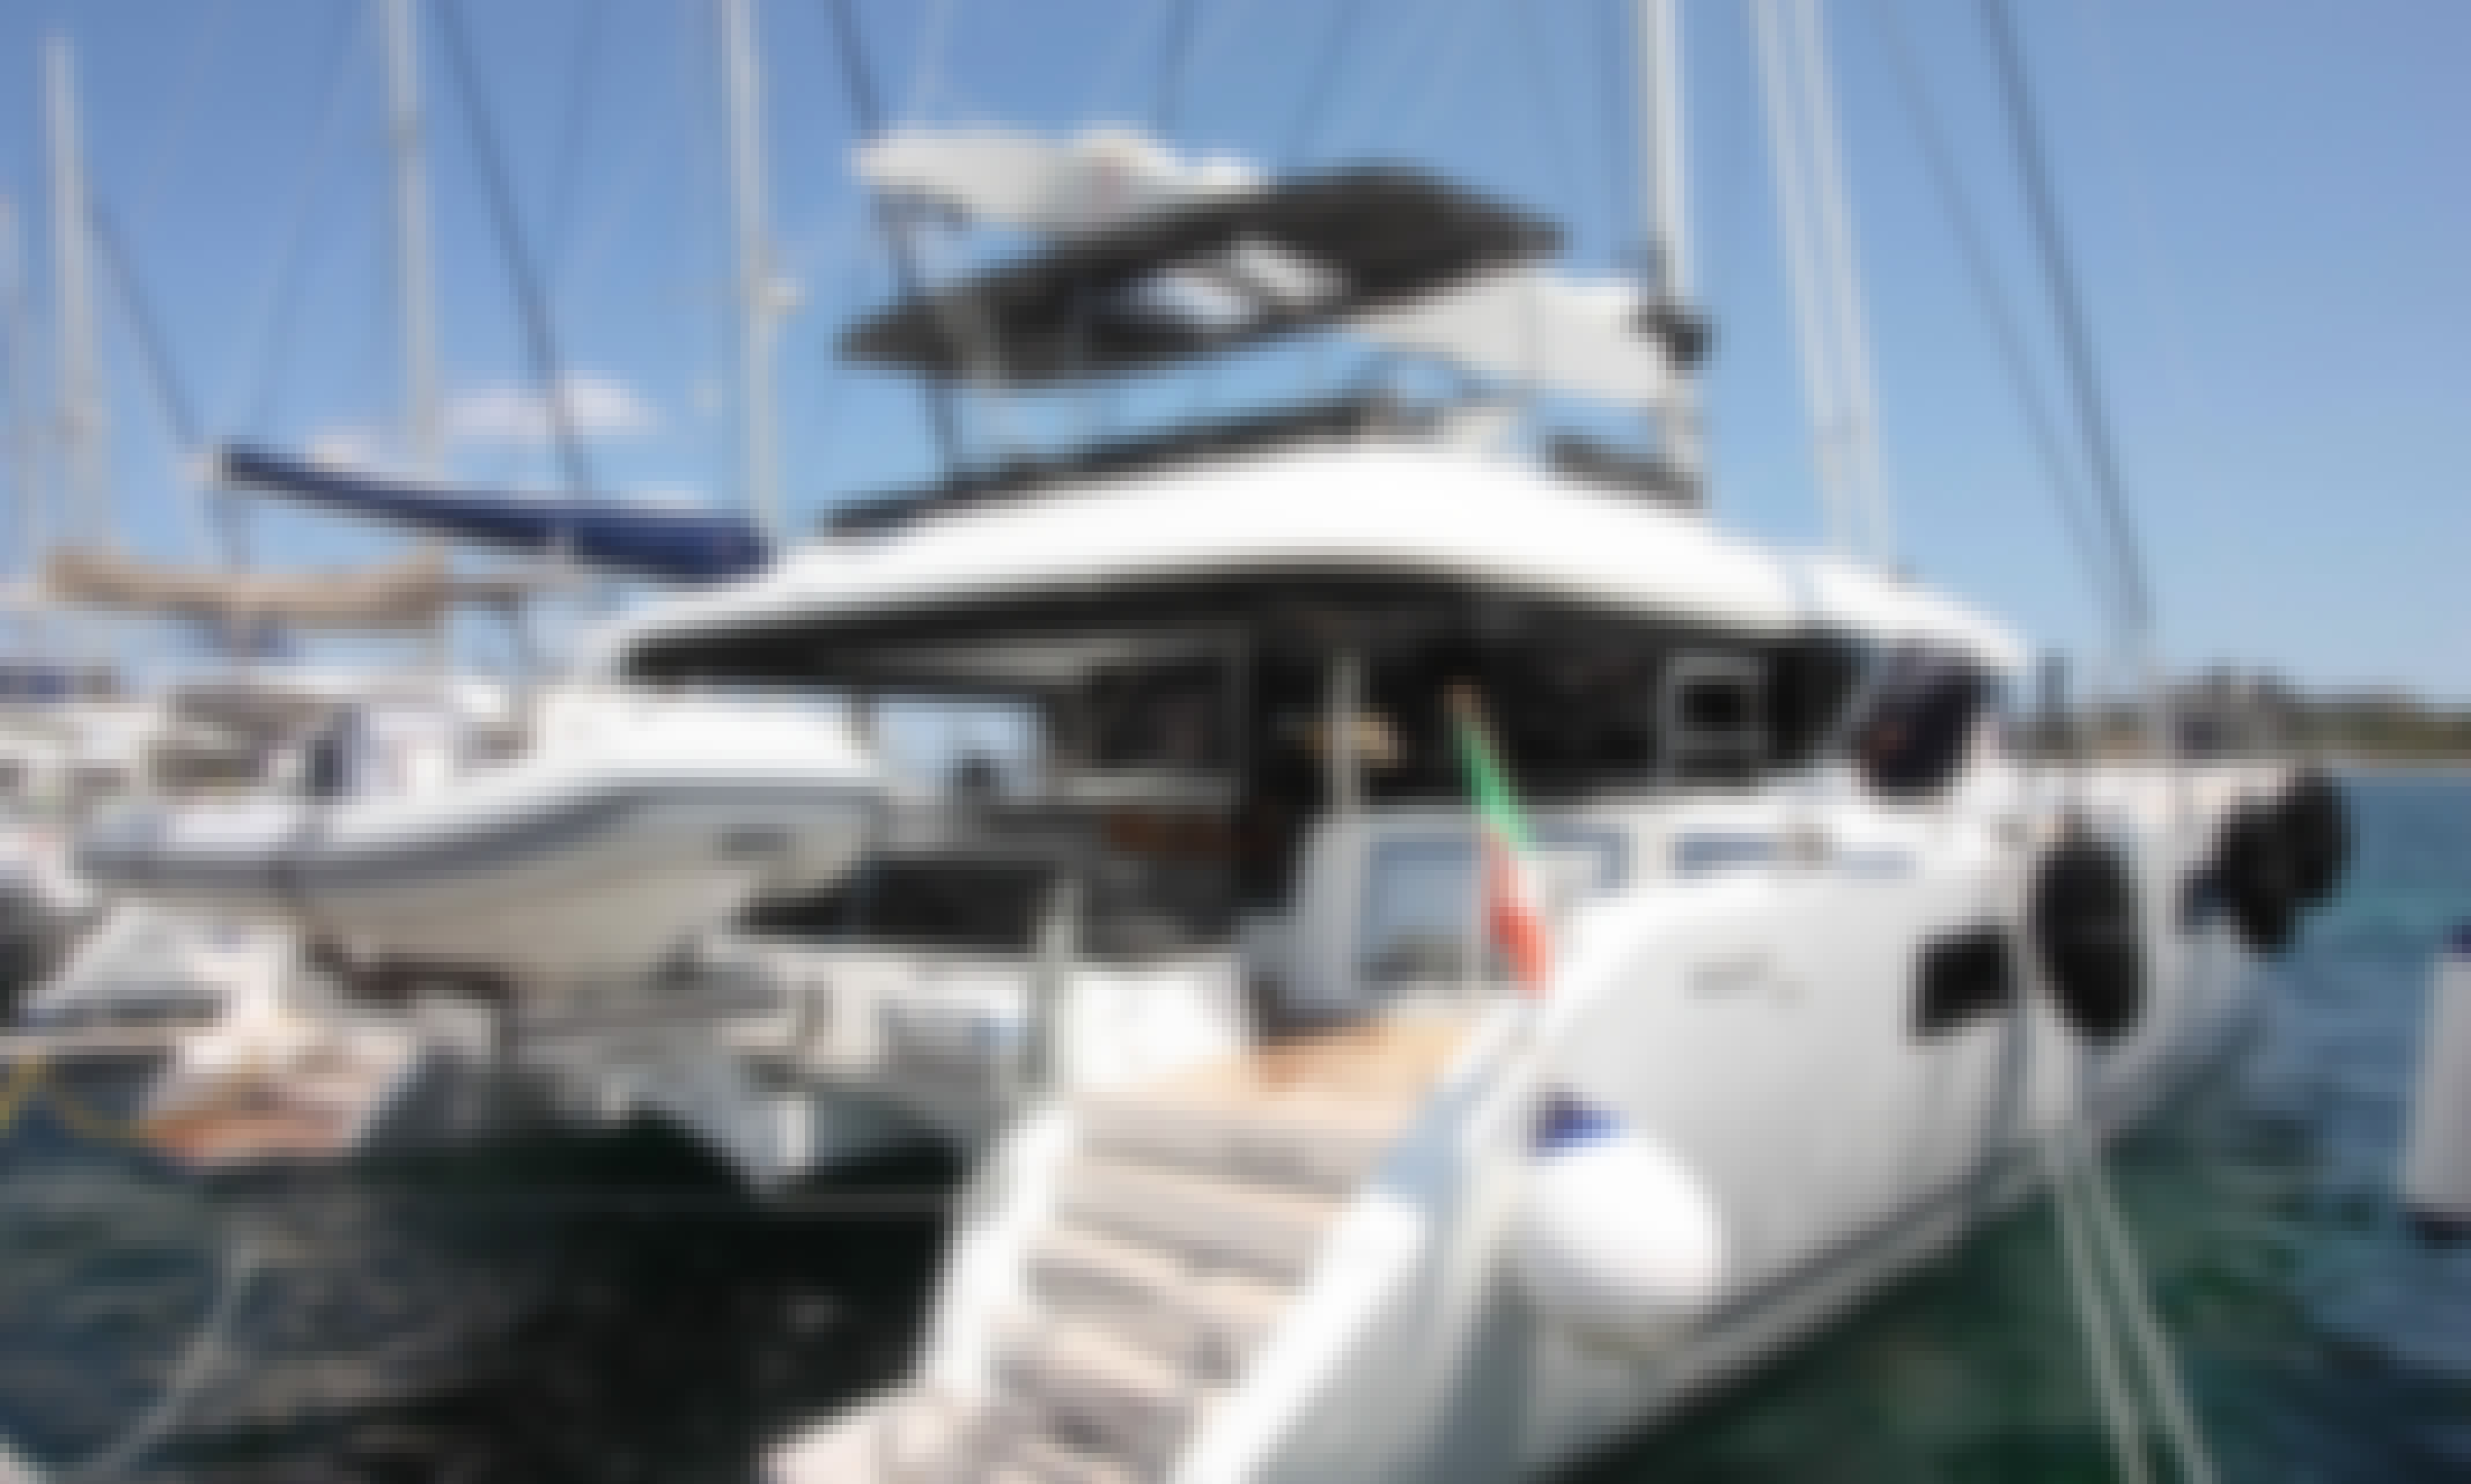 Charter the 2020 Lagoon 620 Catamaran to see fascinating places in Sardinia!